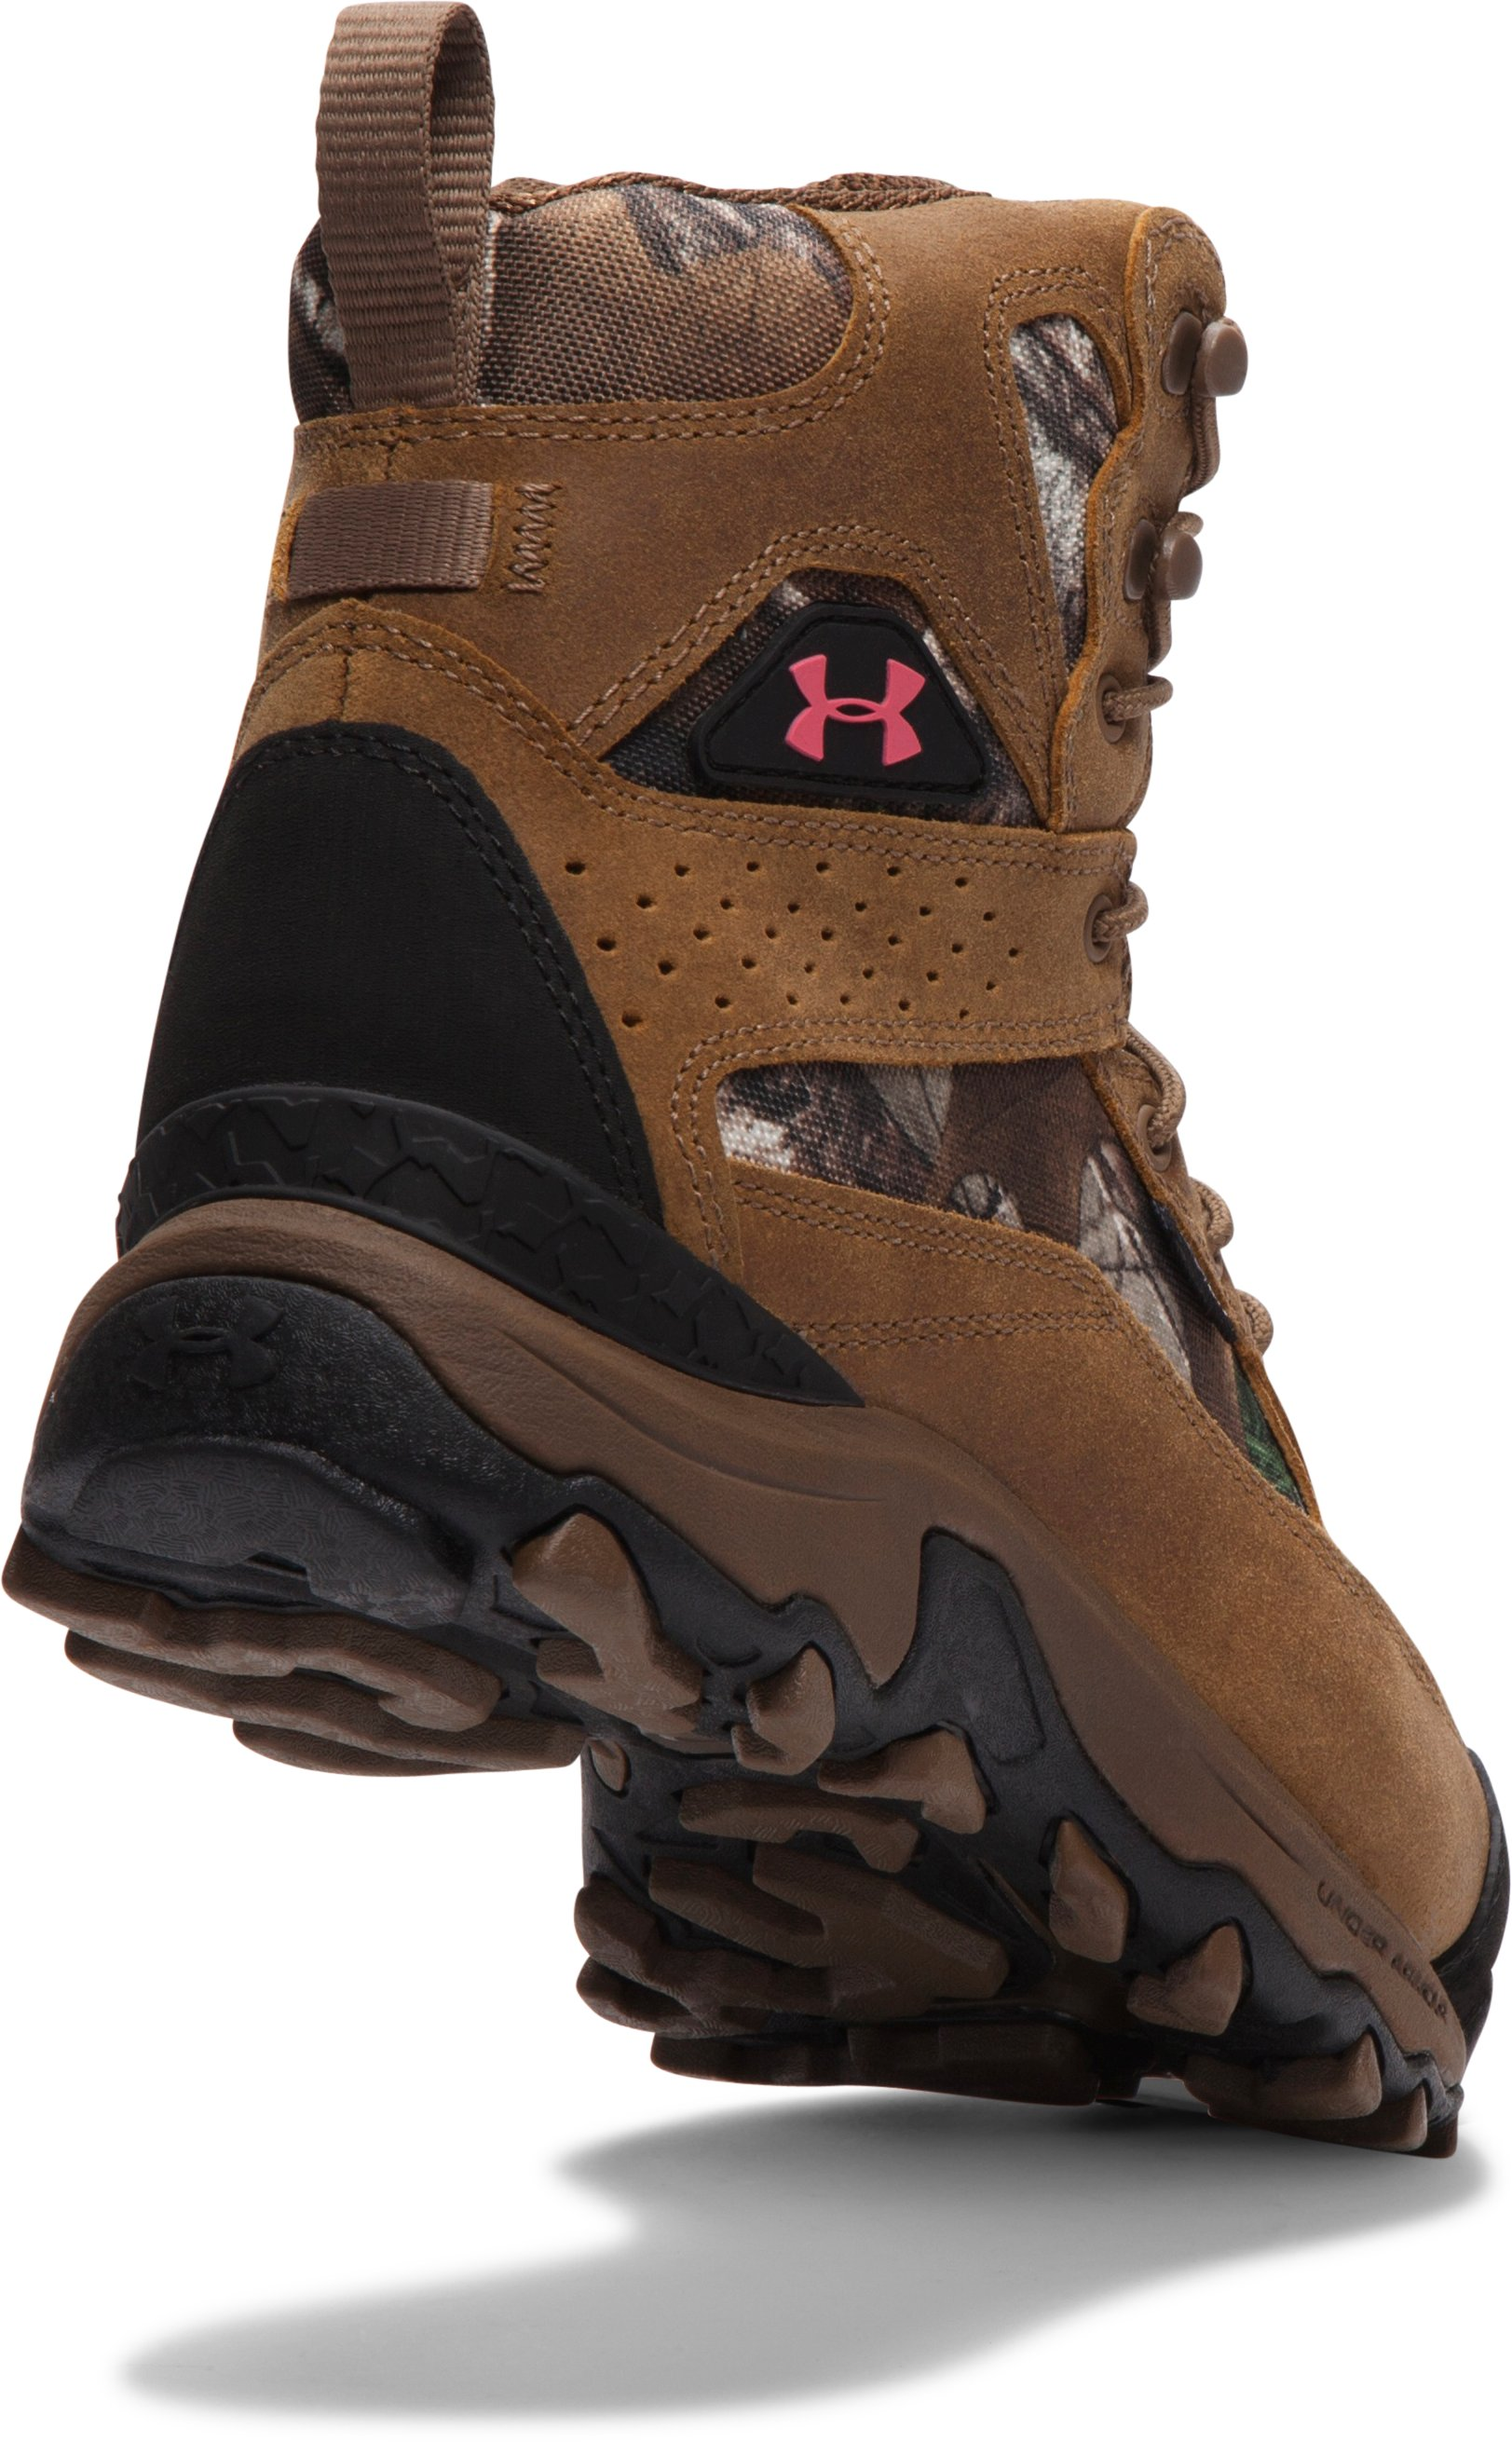 Women's UA Speed Freek Bozeman 600 Boots, REALTREE AP-XTRA